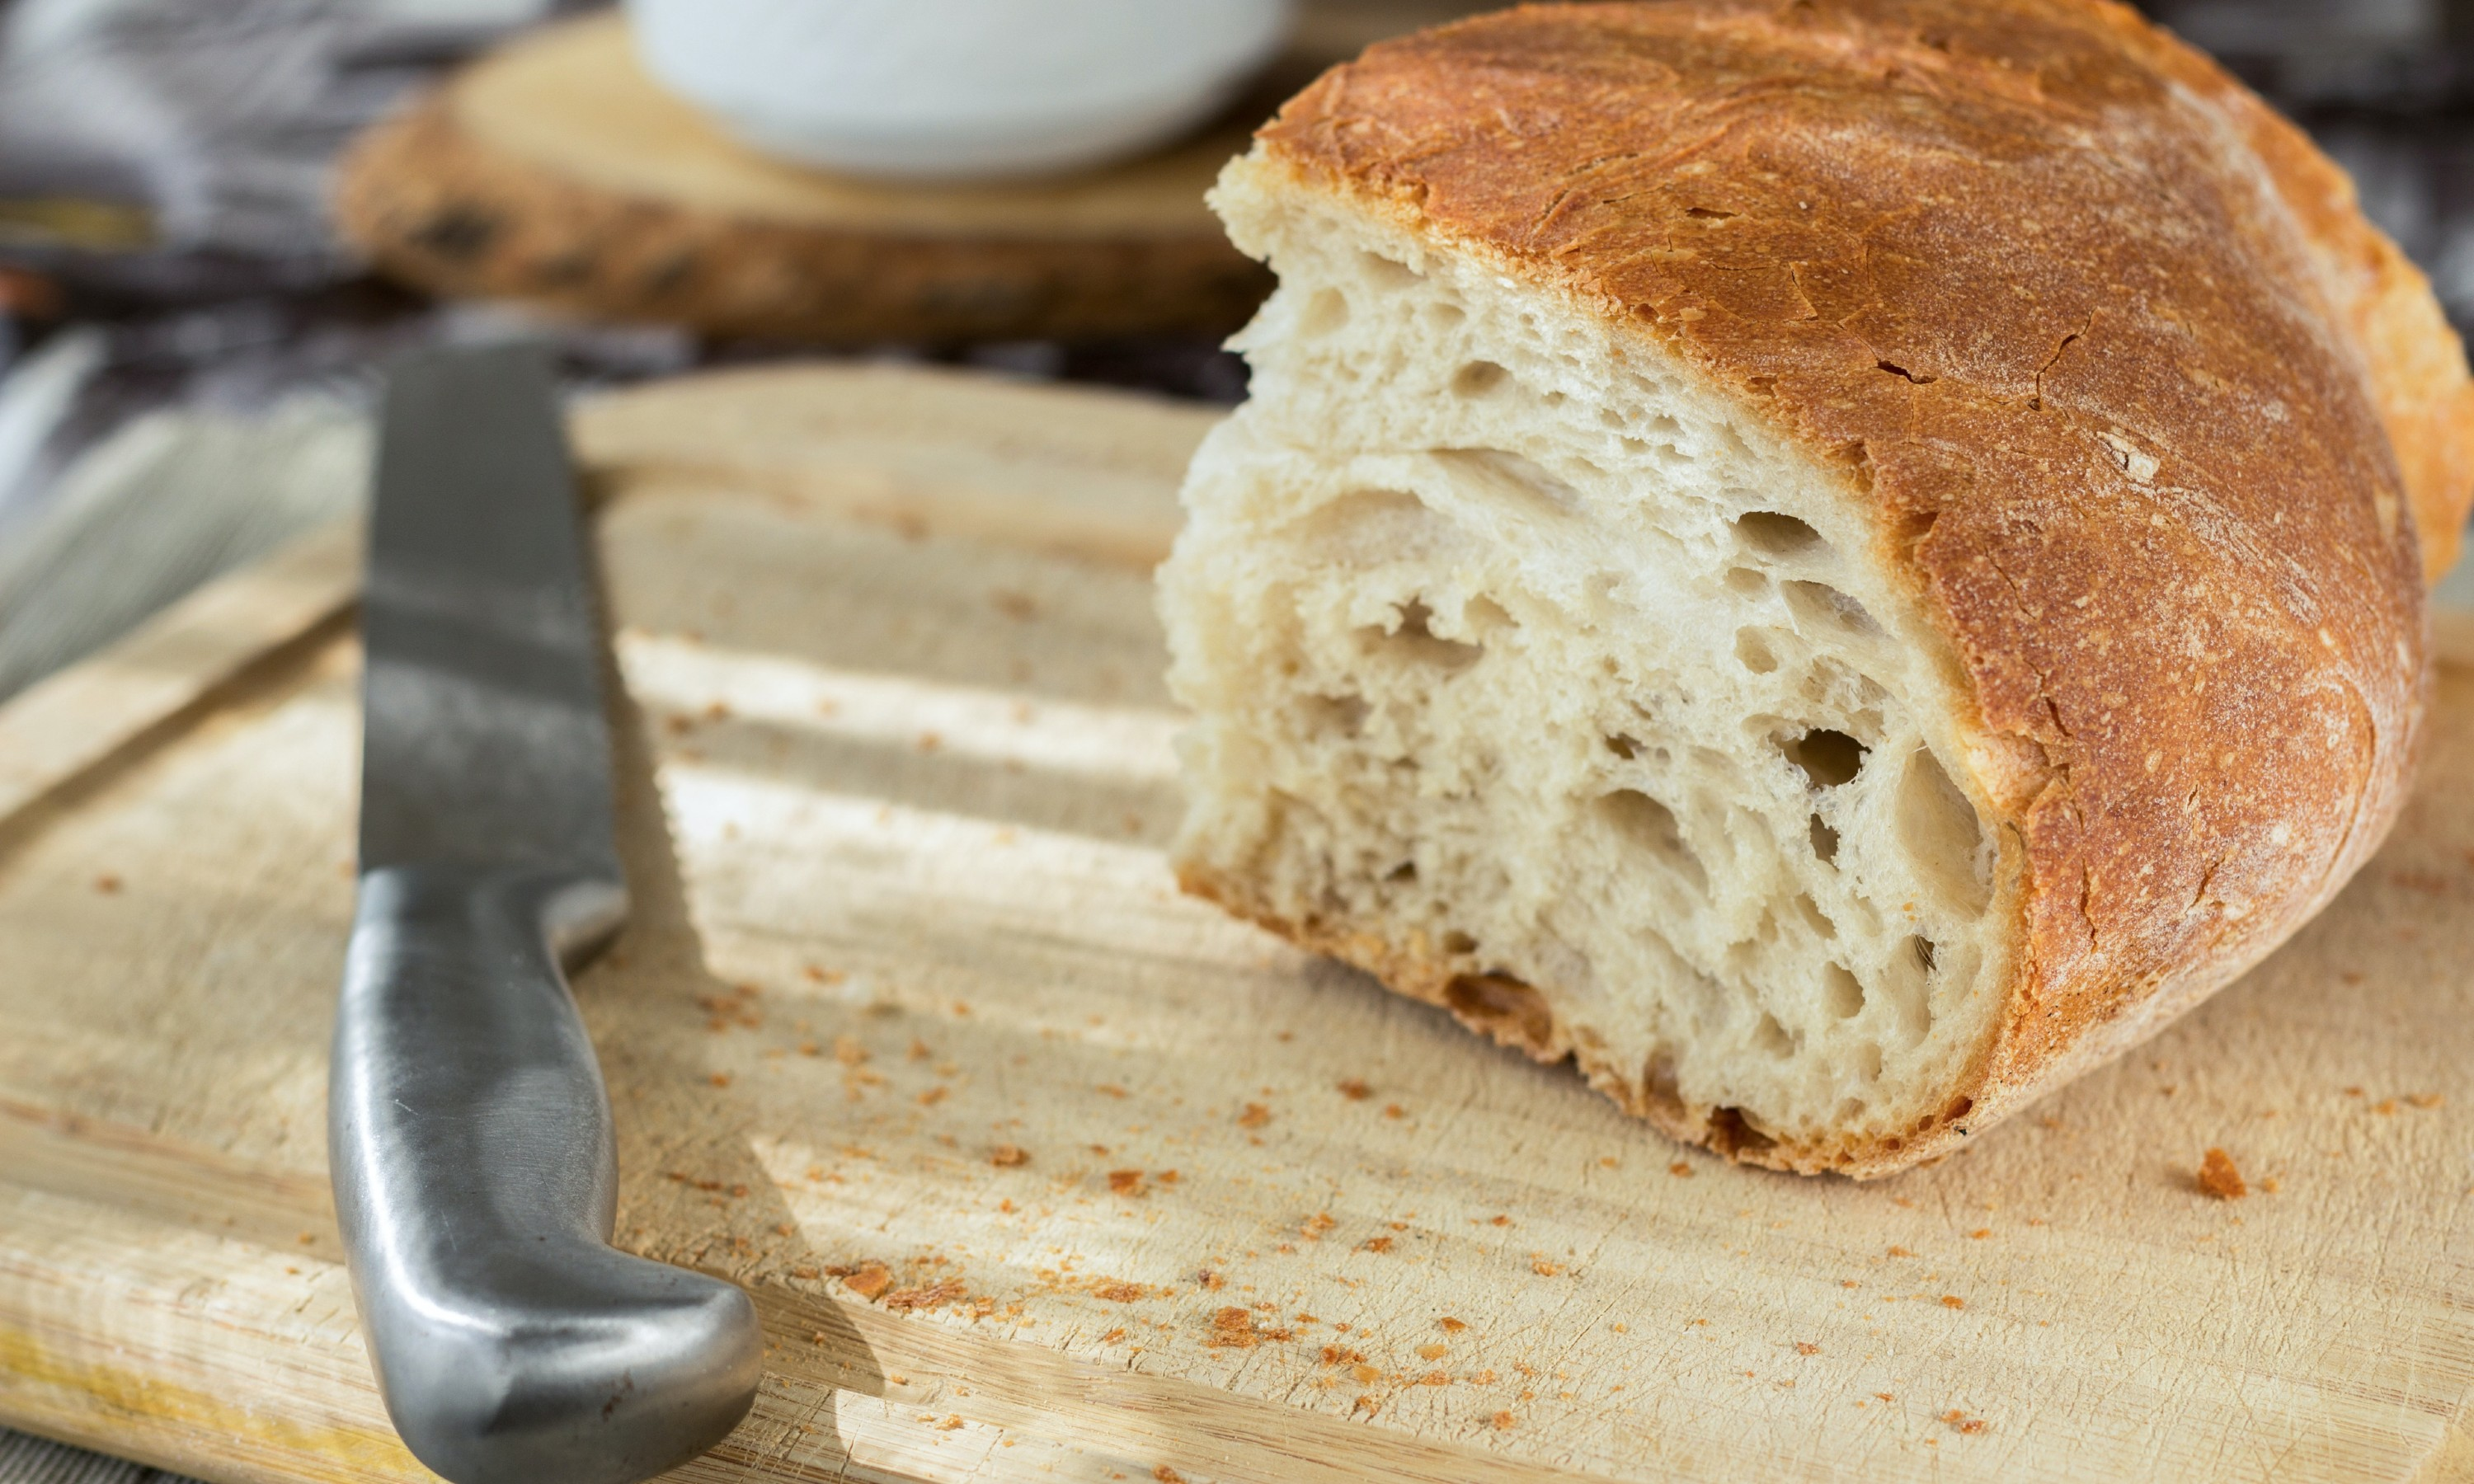 A loaf of bread on a chopping board with a bread knife.